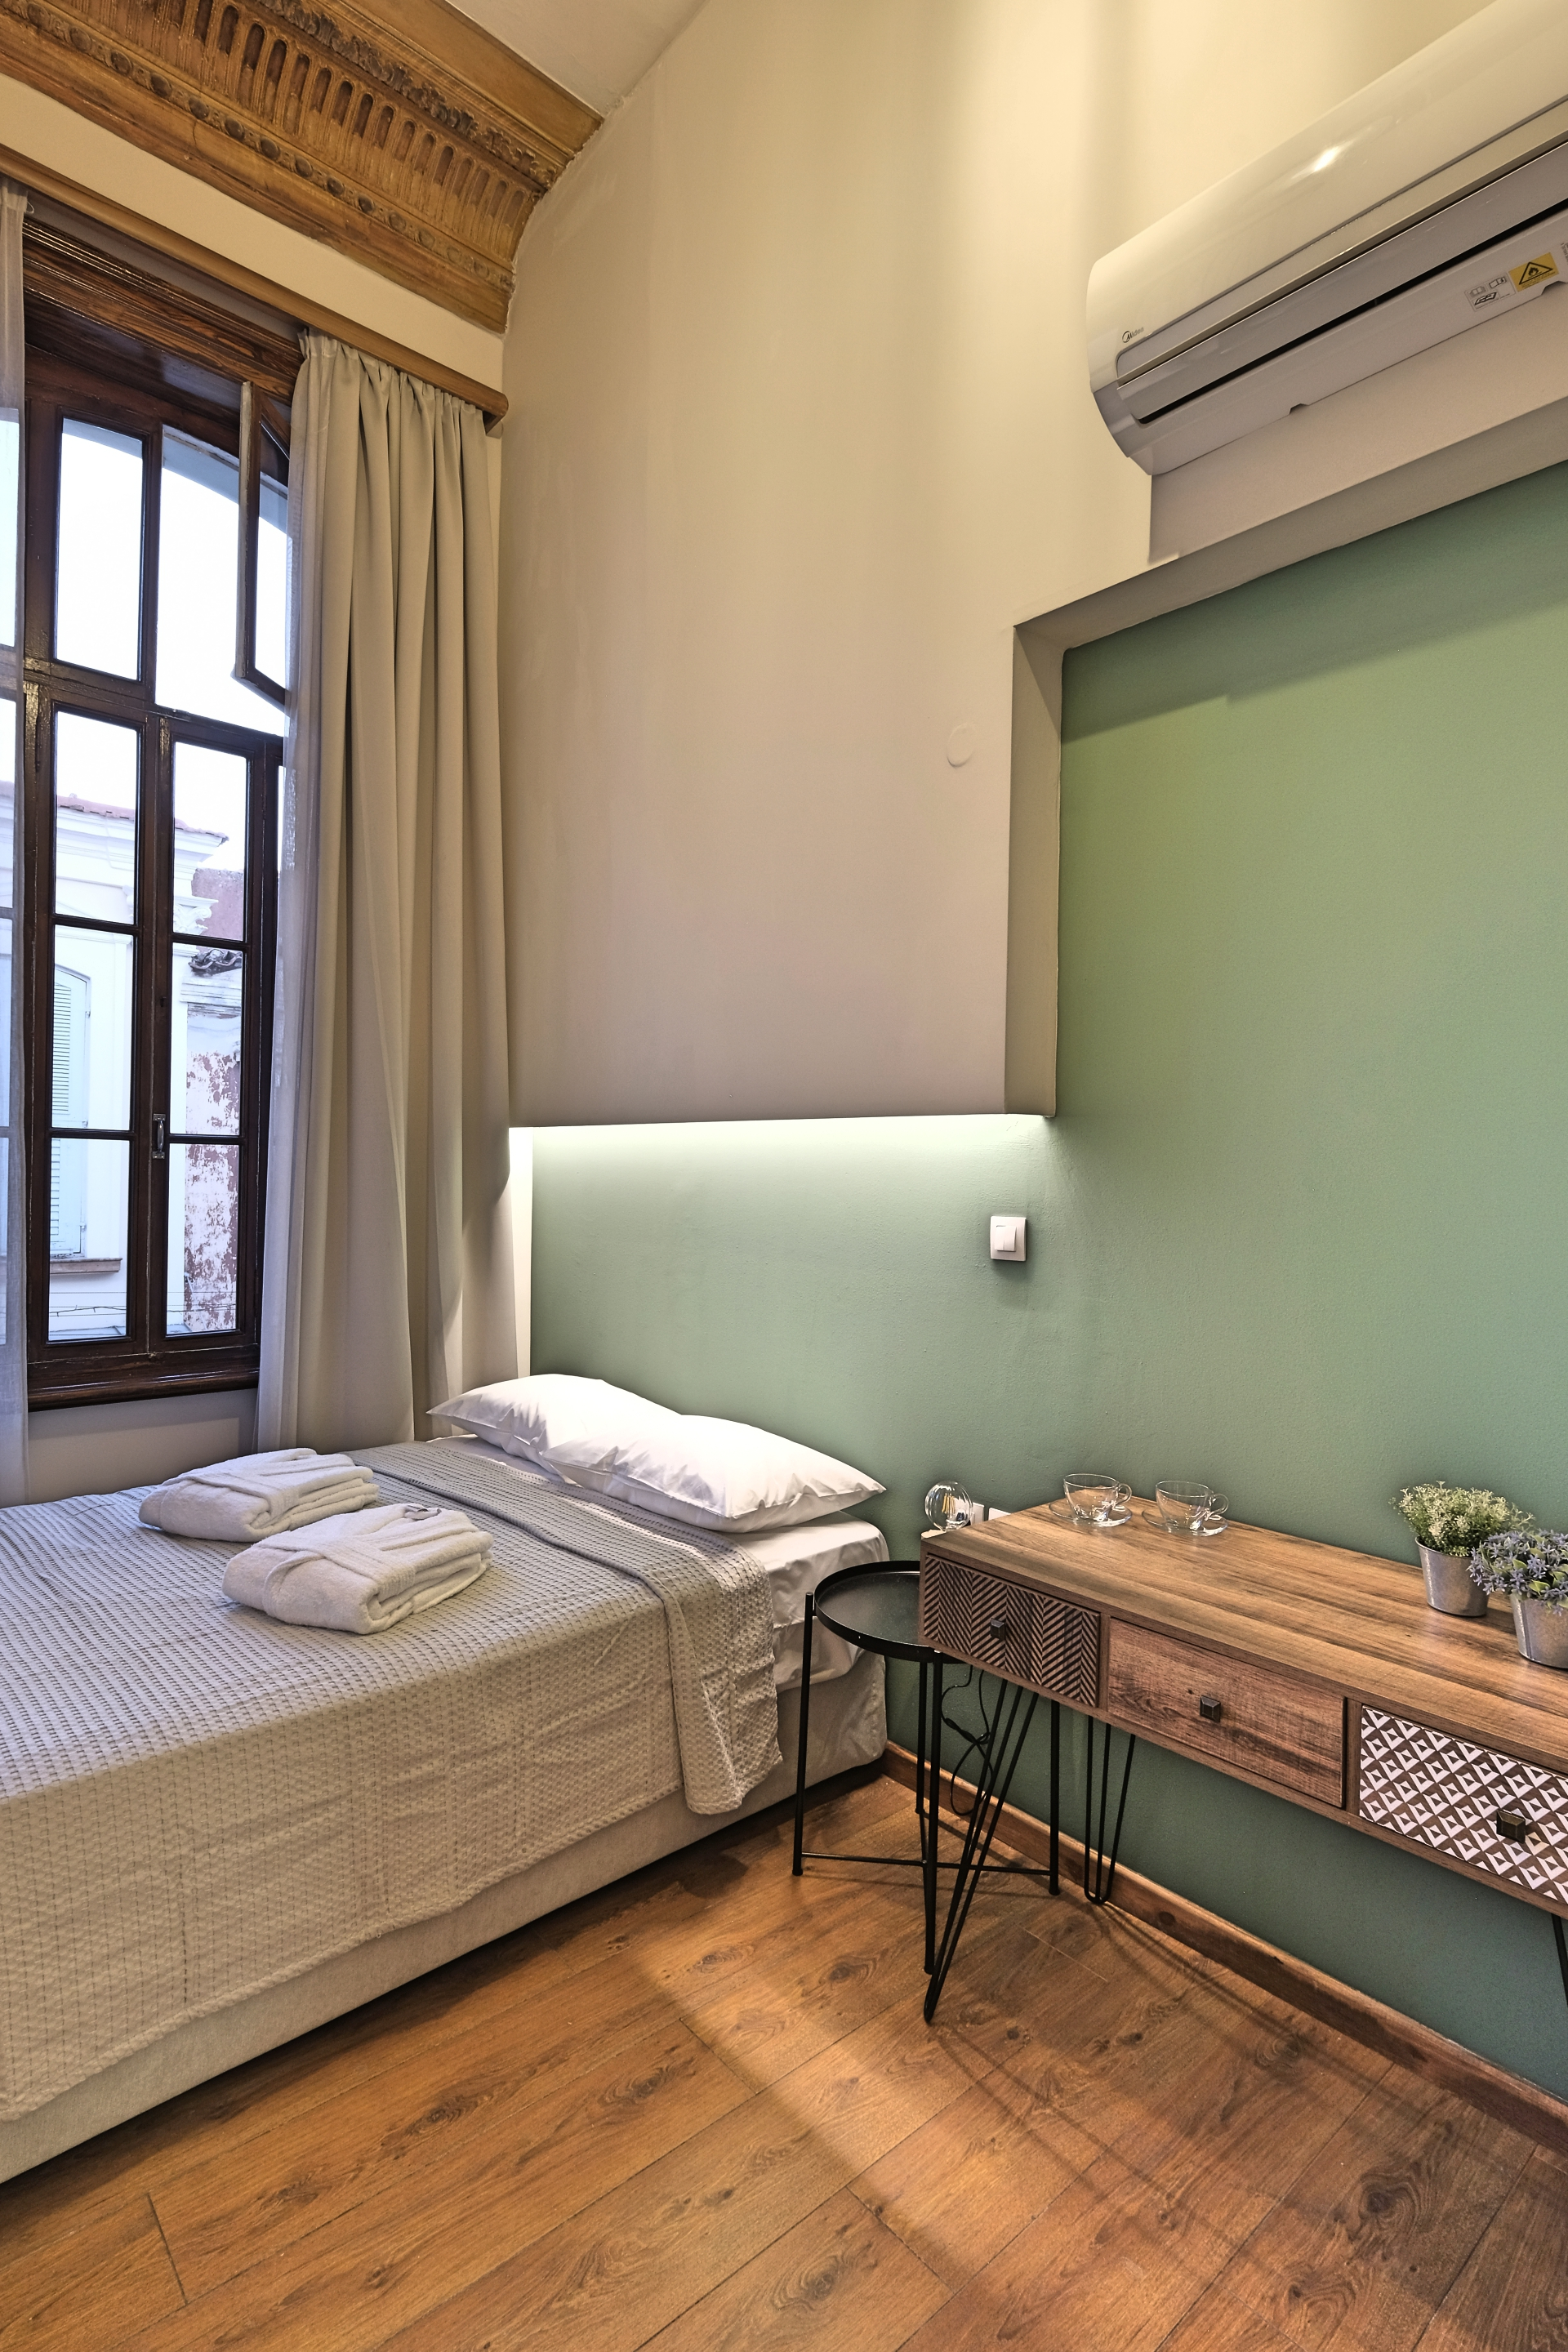 Budget Single Room Bed & Desk - Agora Residence - Hotel in Chios